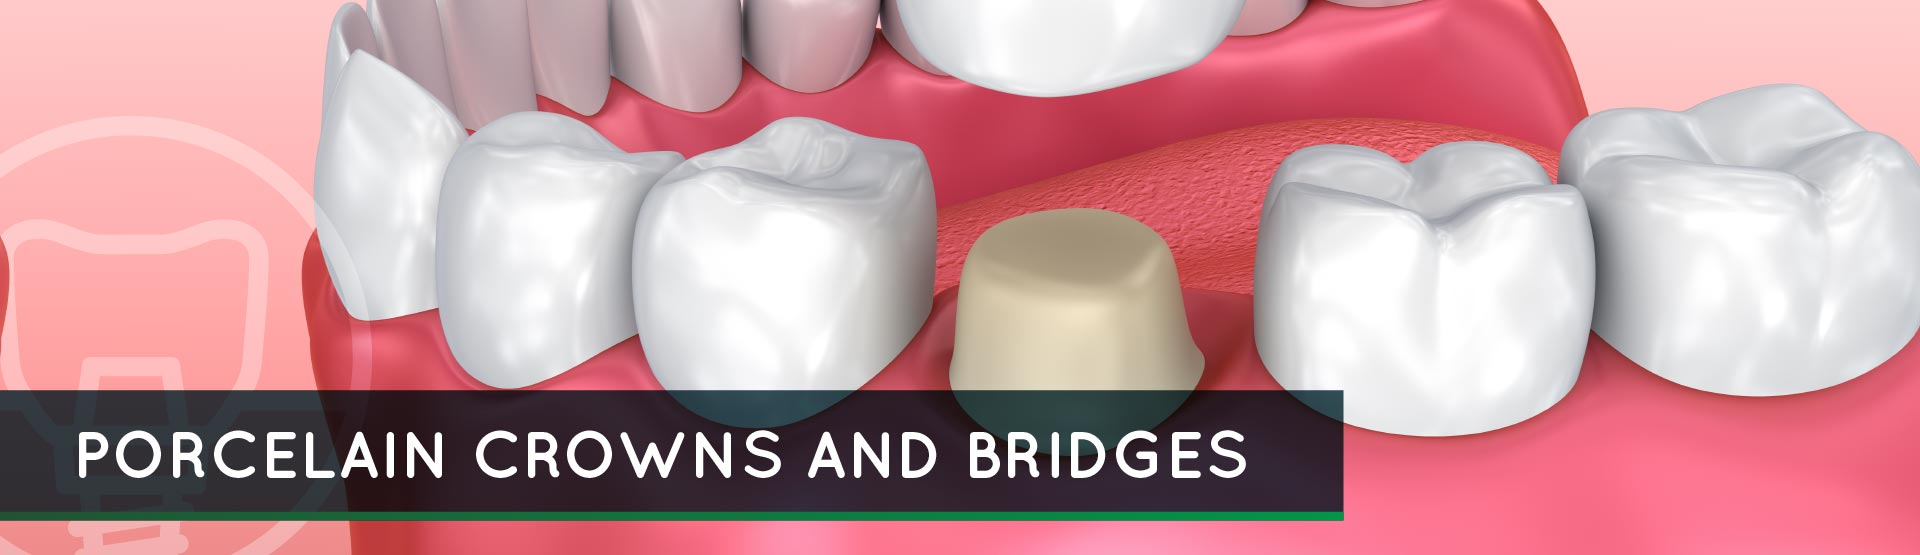 Porcelain Crowns and Bridges – Cosmetic Dental Care and